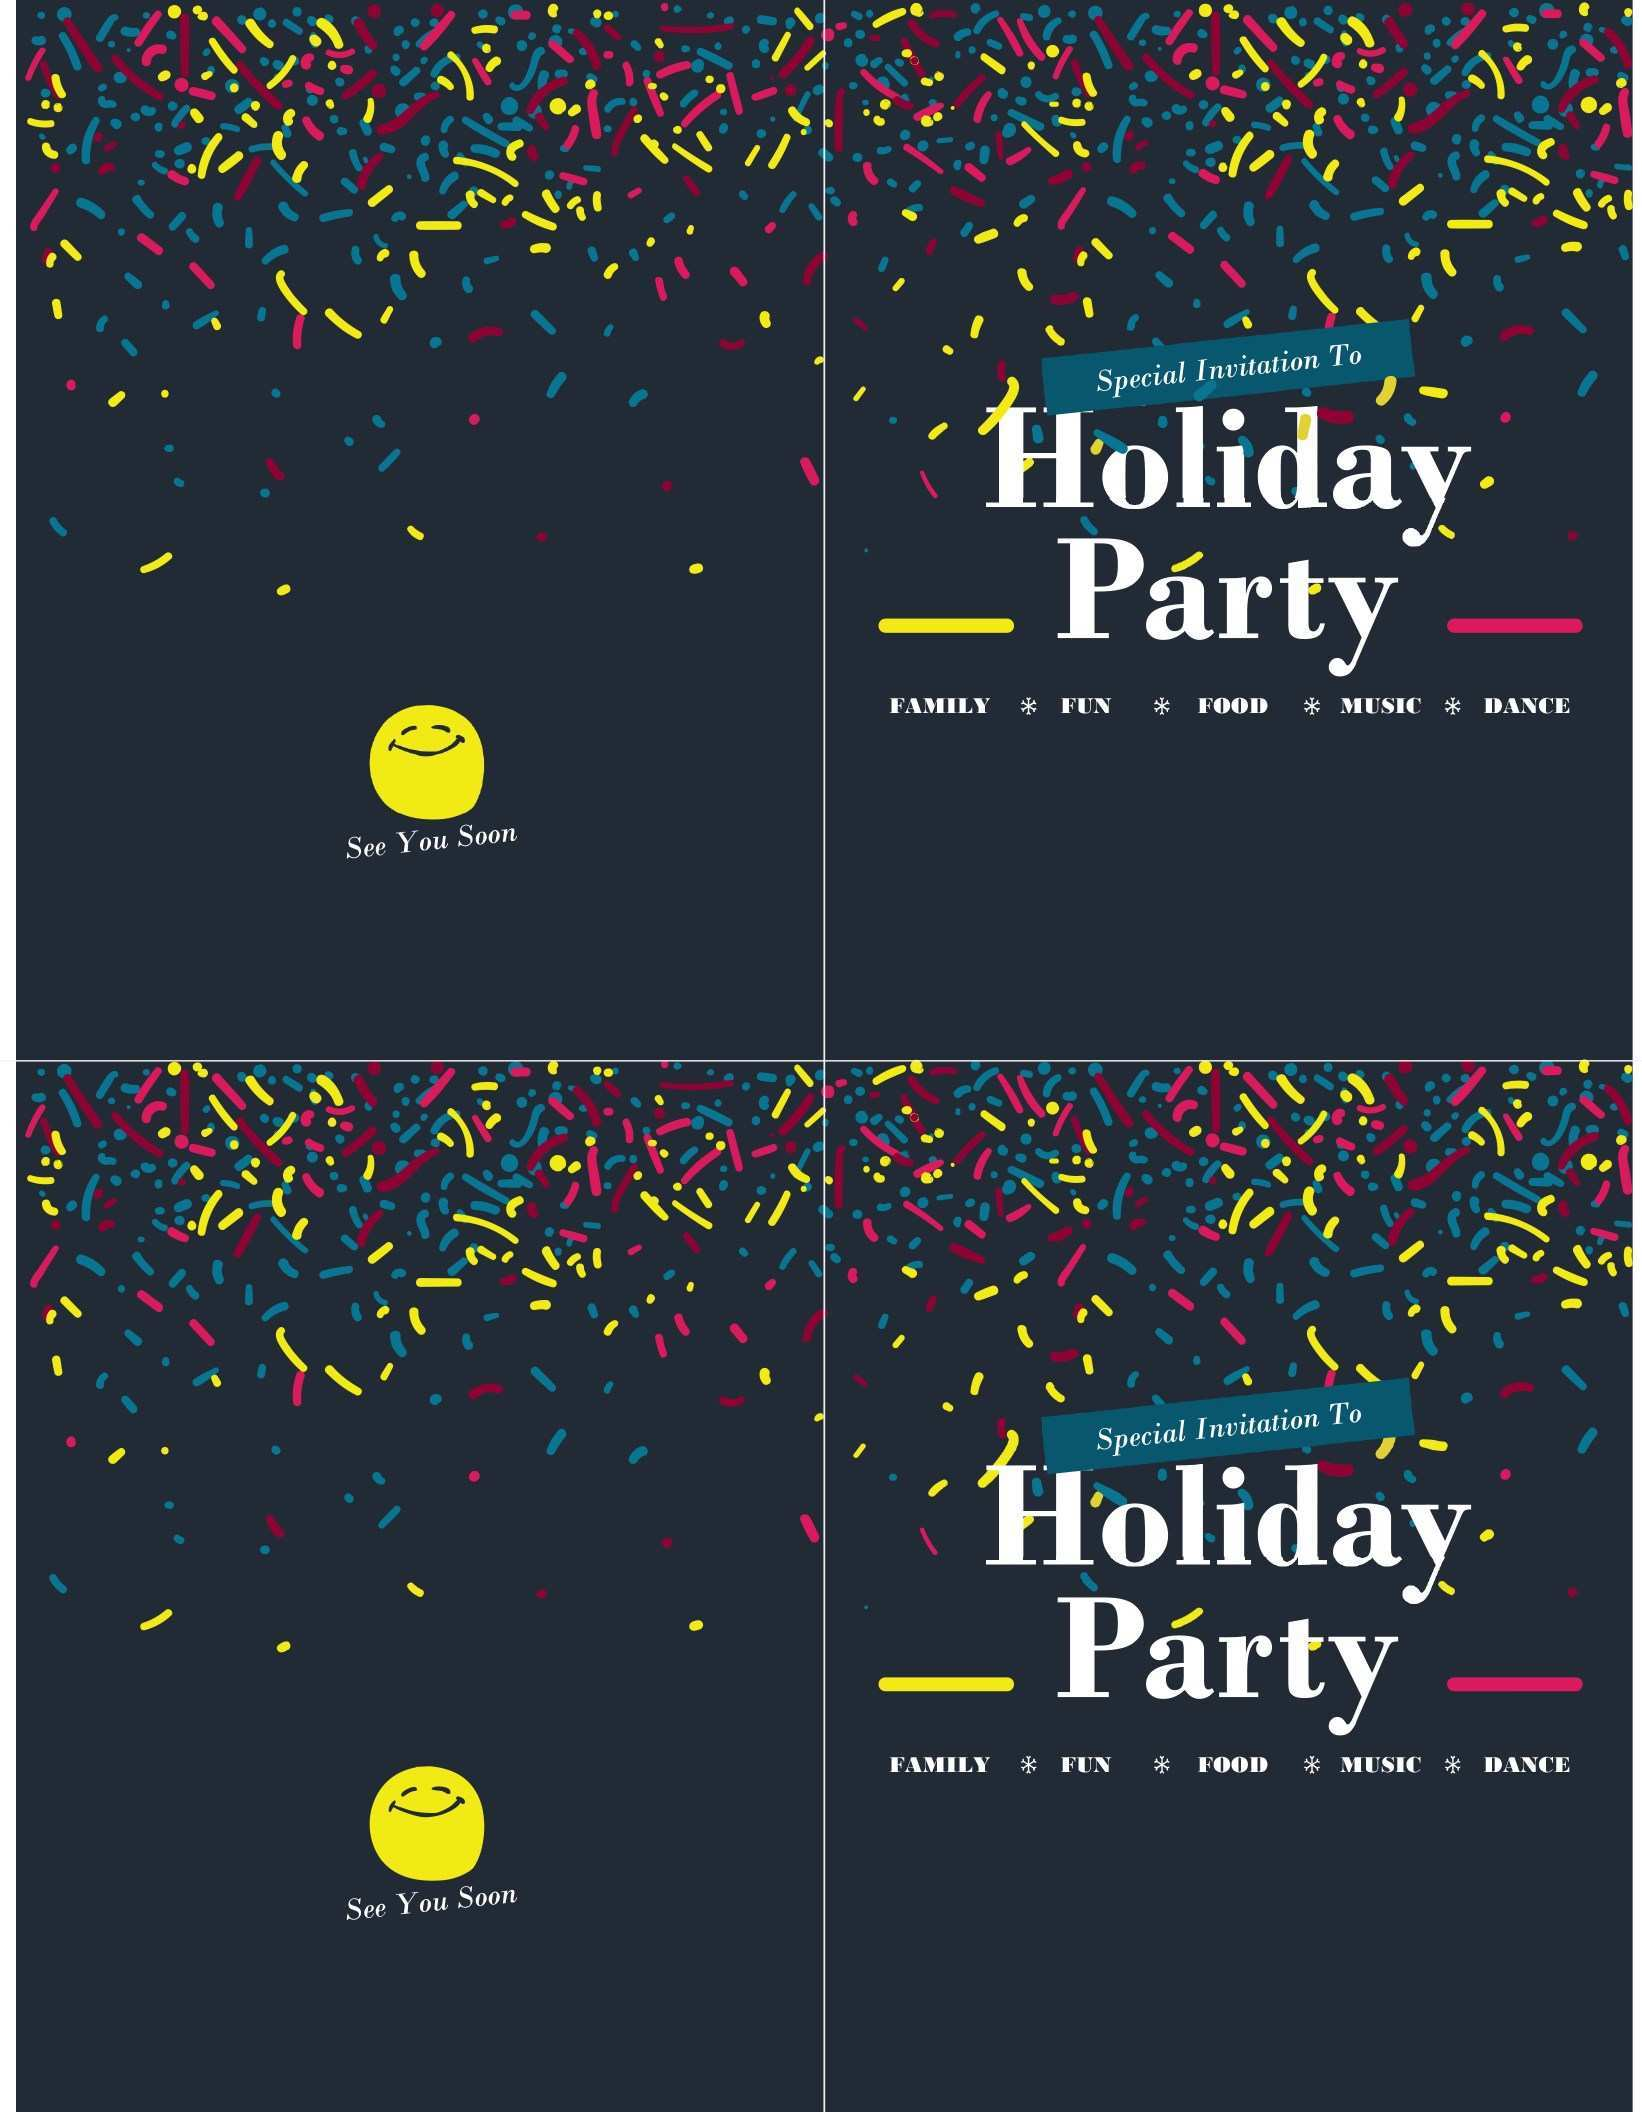 4 Standard Party Invitation Template Open Office PSD File for